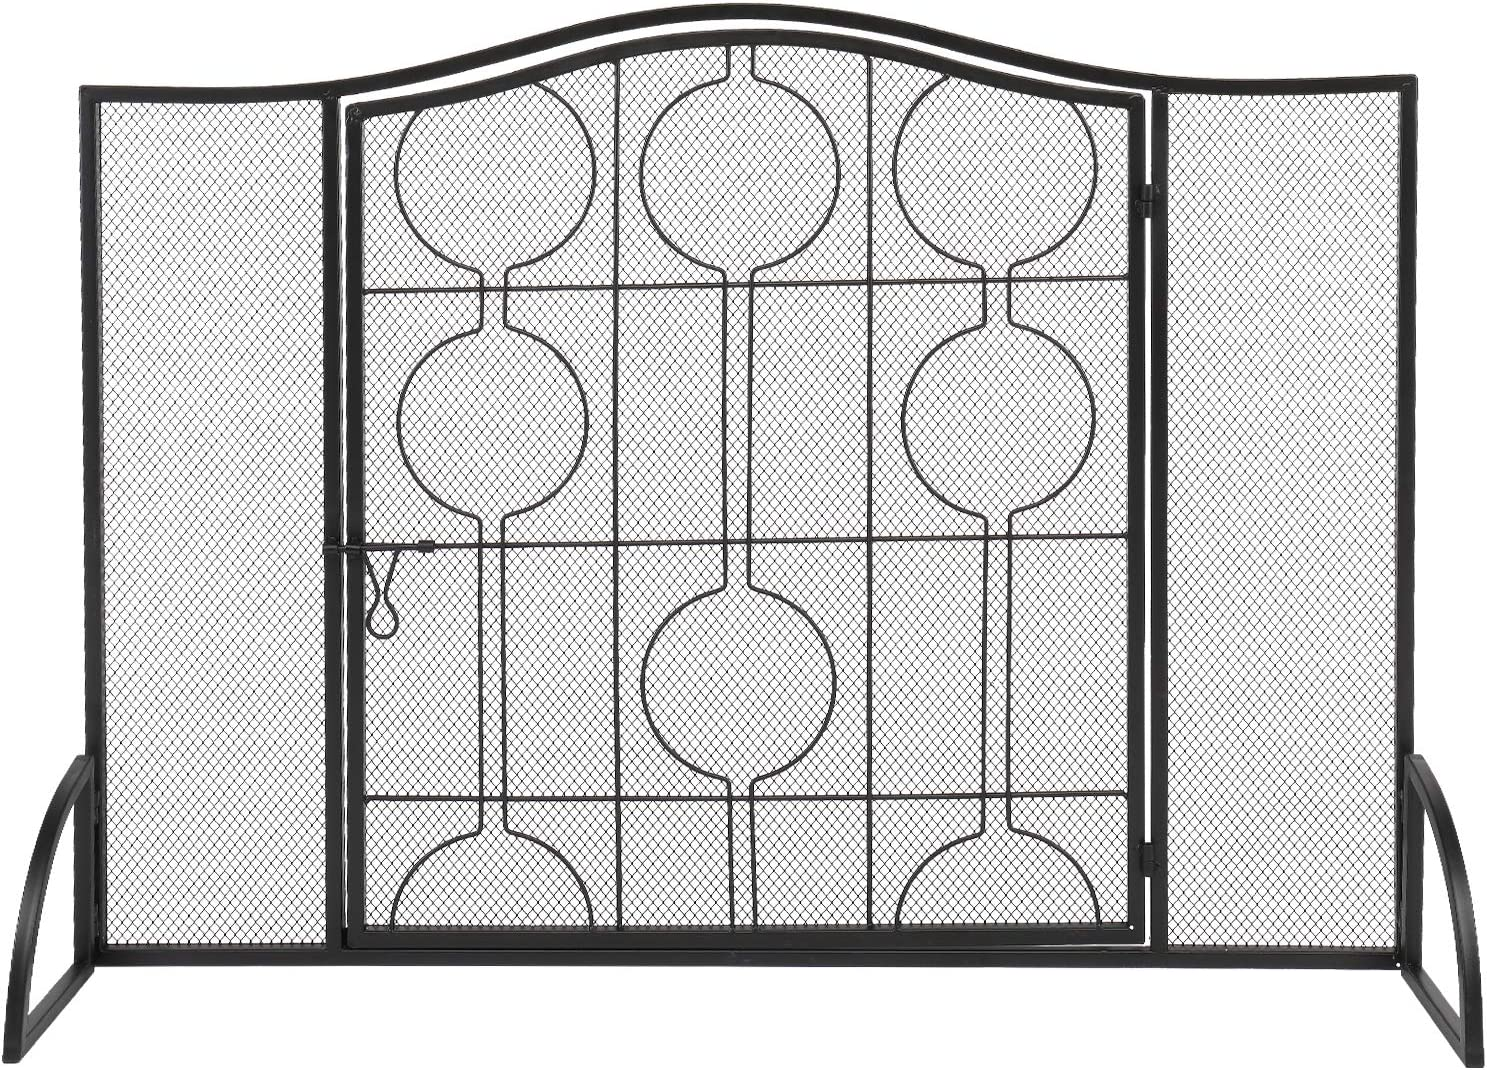 Spaco Curve Outlet ☆ Free Shipping Decorative Iron Fireplace Screen Firepla Guard Max 86% OFF Spark